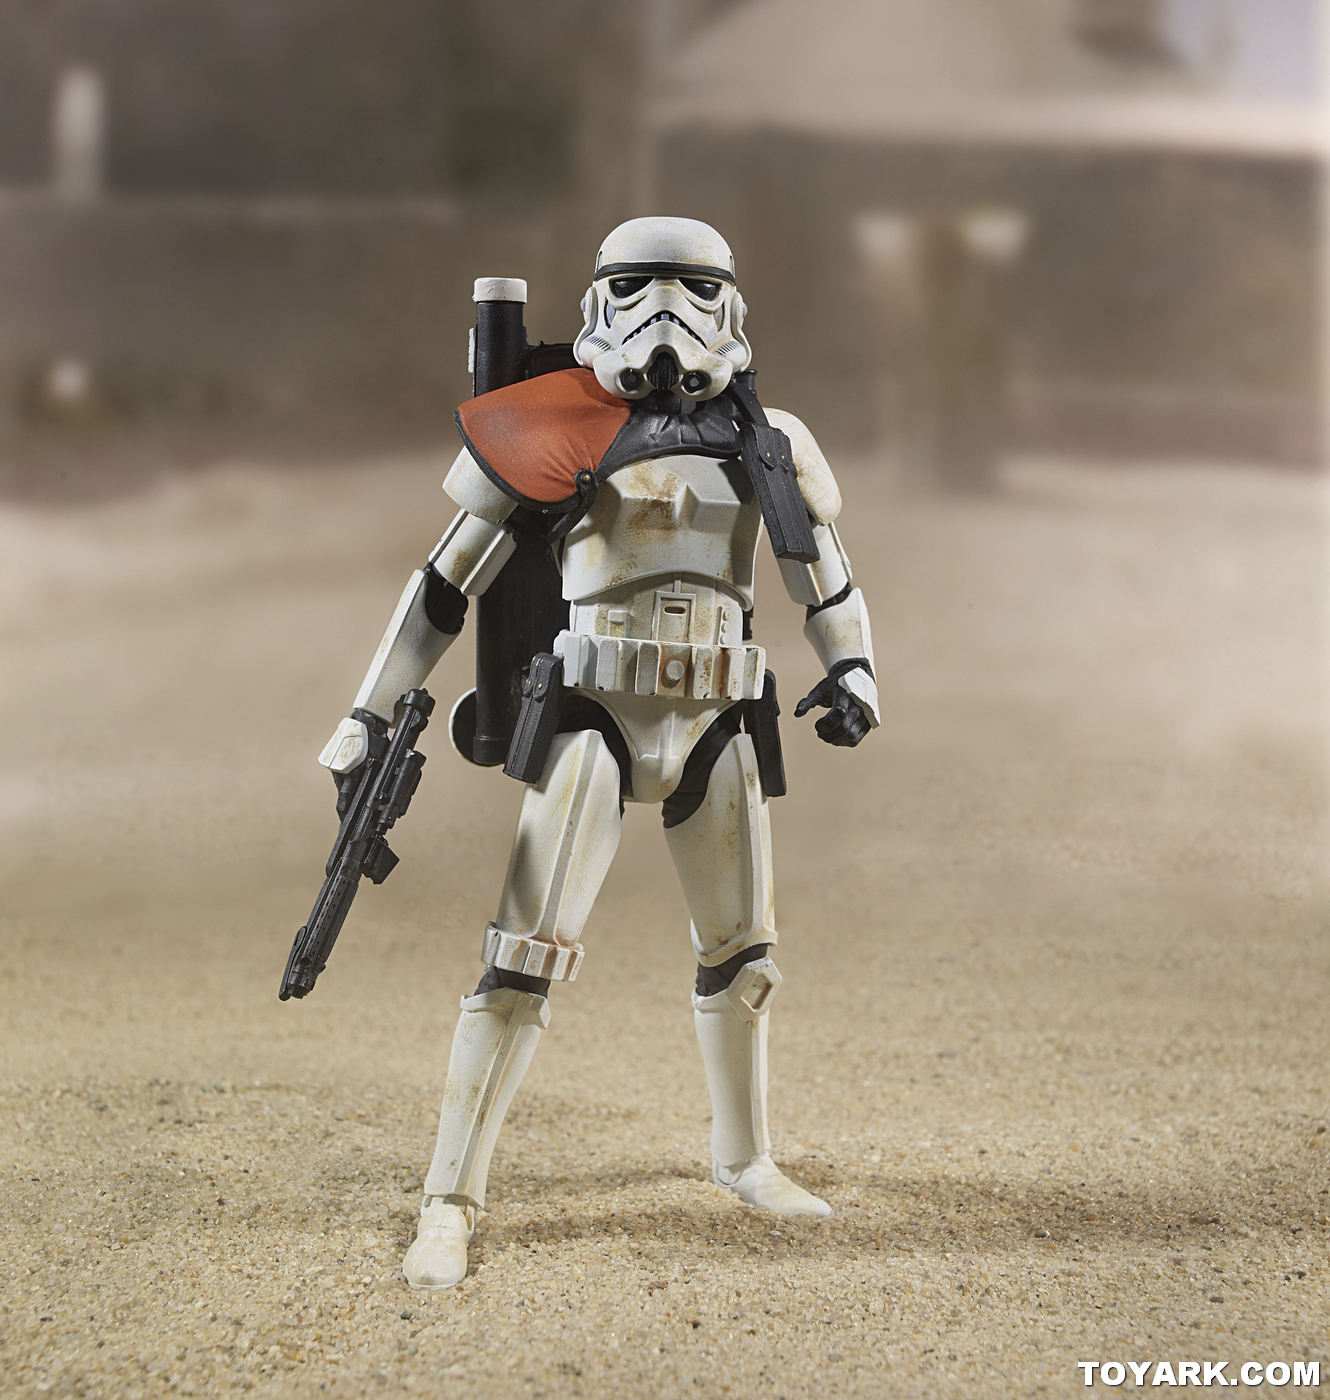 Star Wars Toys 2013 : Star wars black series inch wave the toyark news